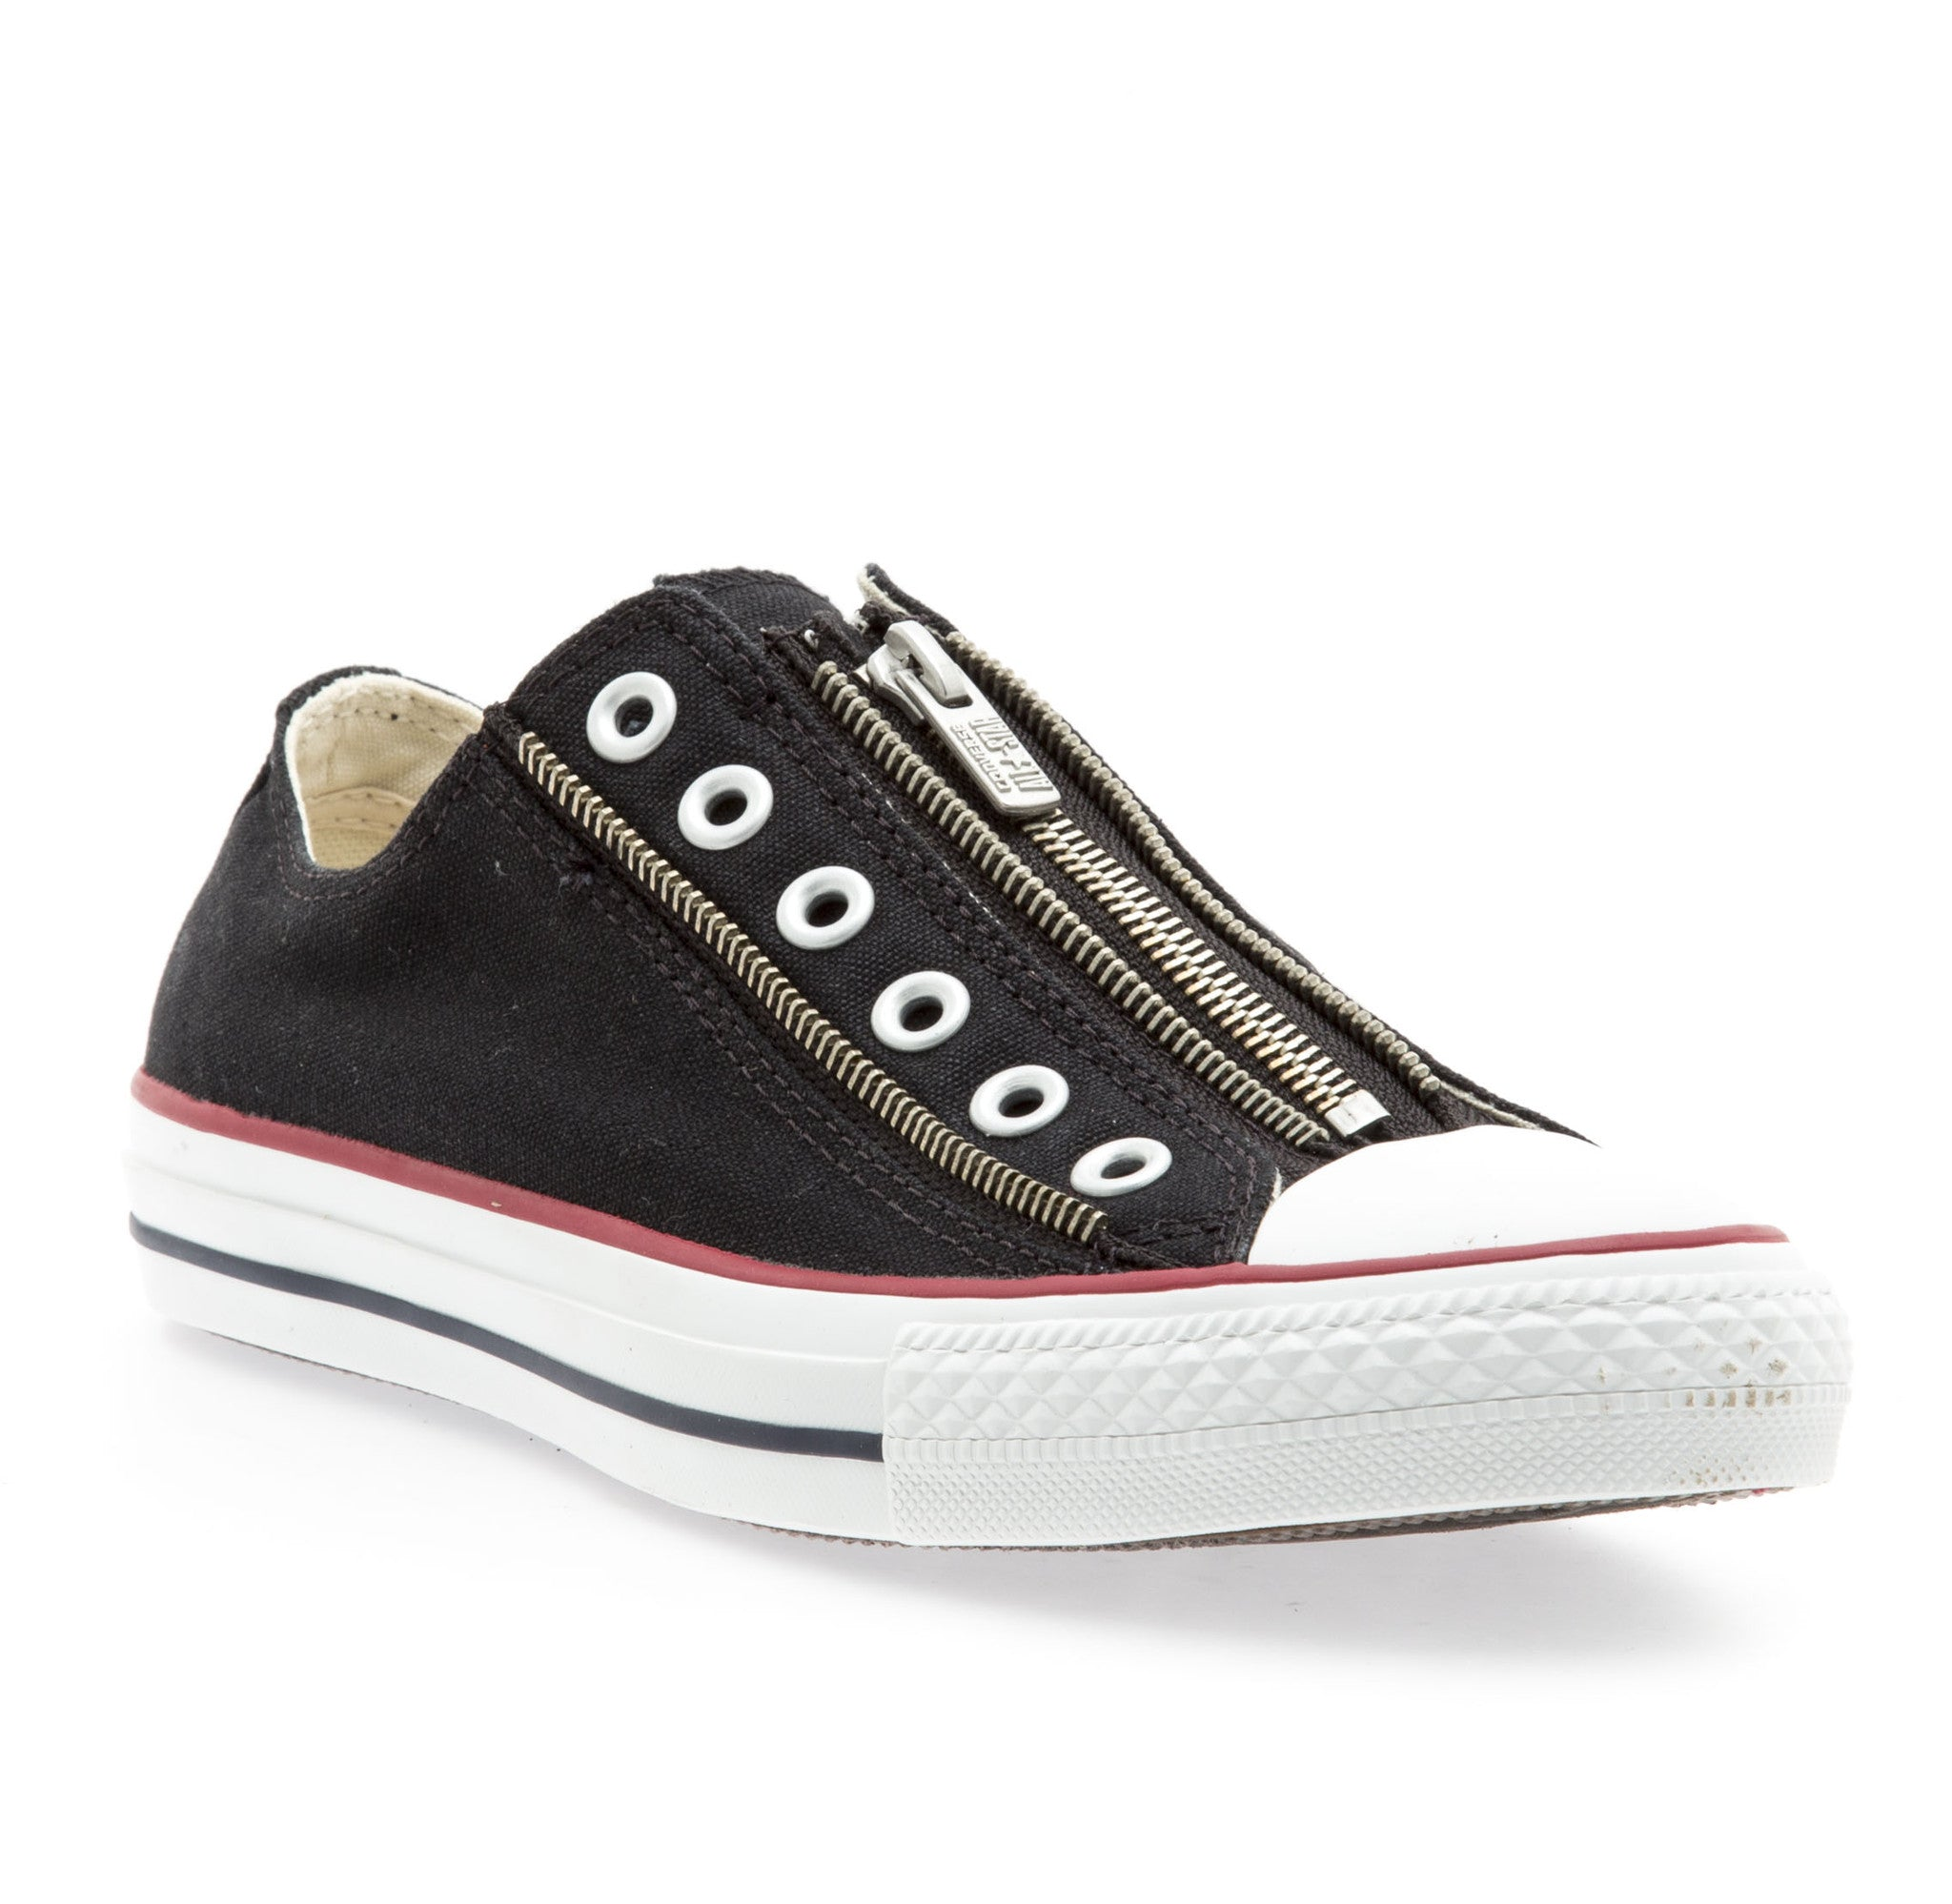 Womens Chuck Taylor All Star Tri Zip Slip On